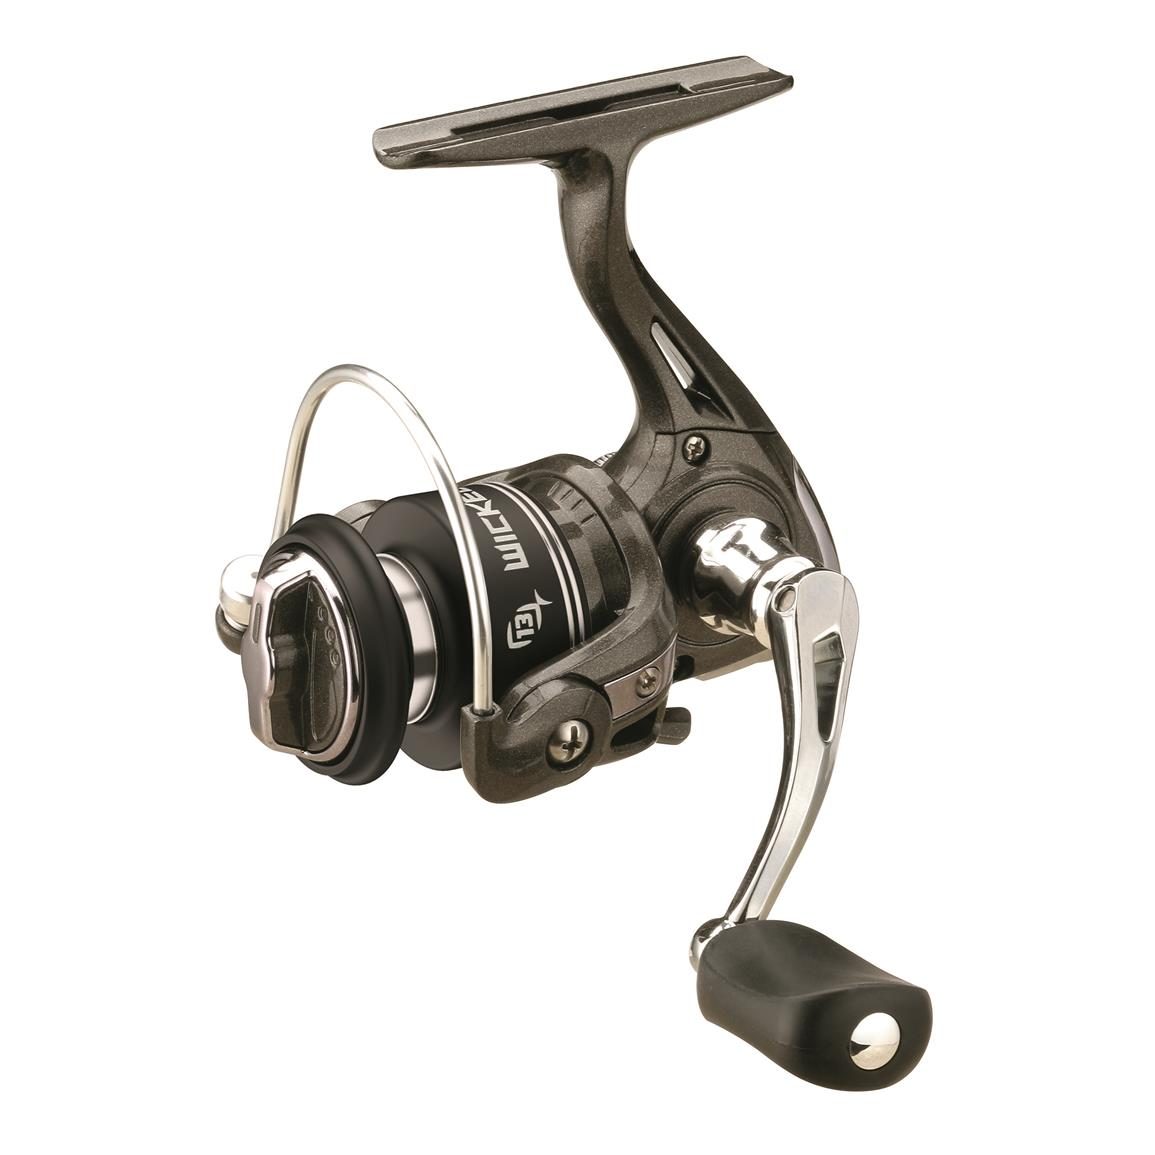 13 Fishing Wicked Ice Fishing Spinning Reel